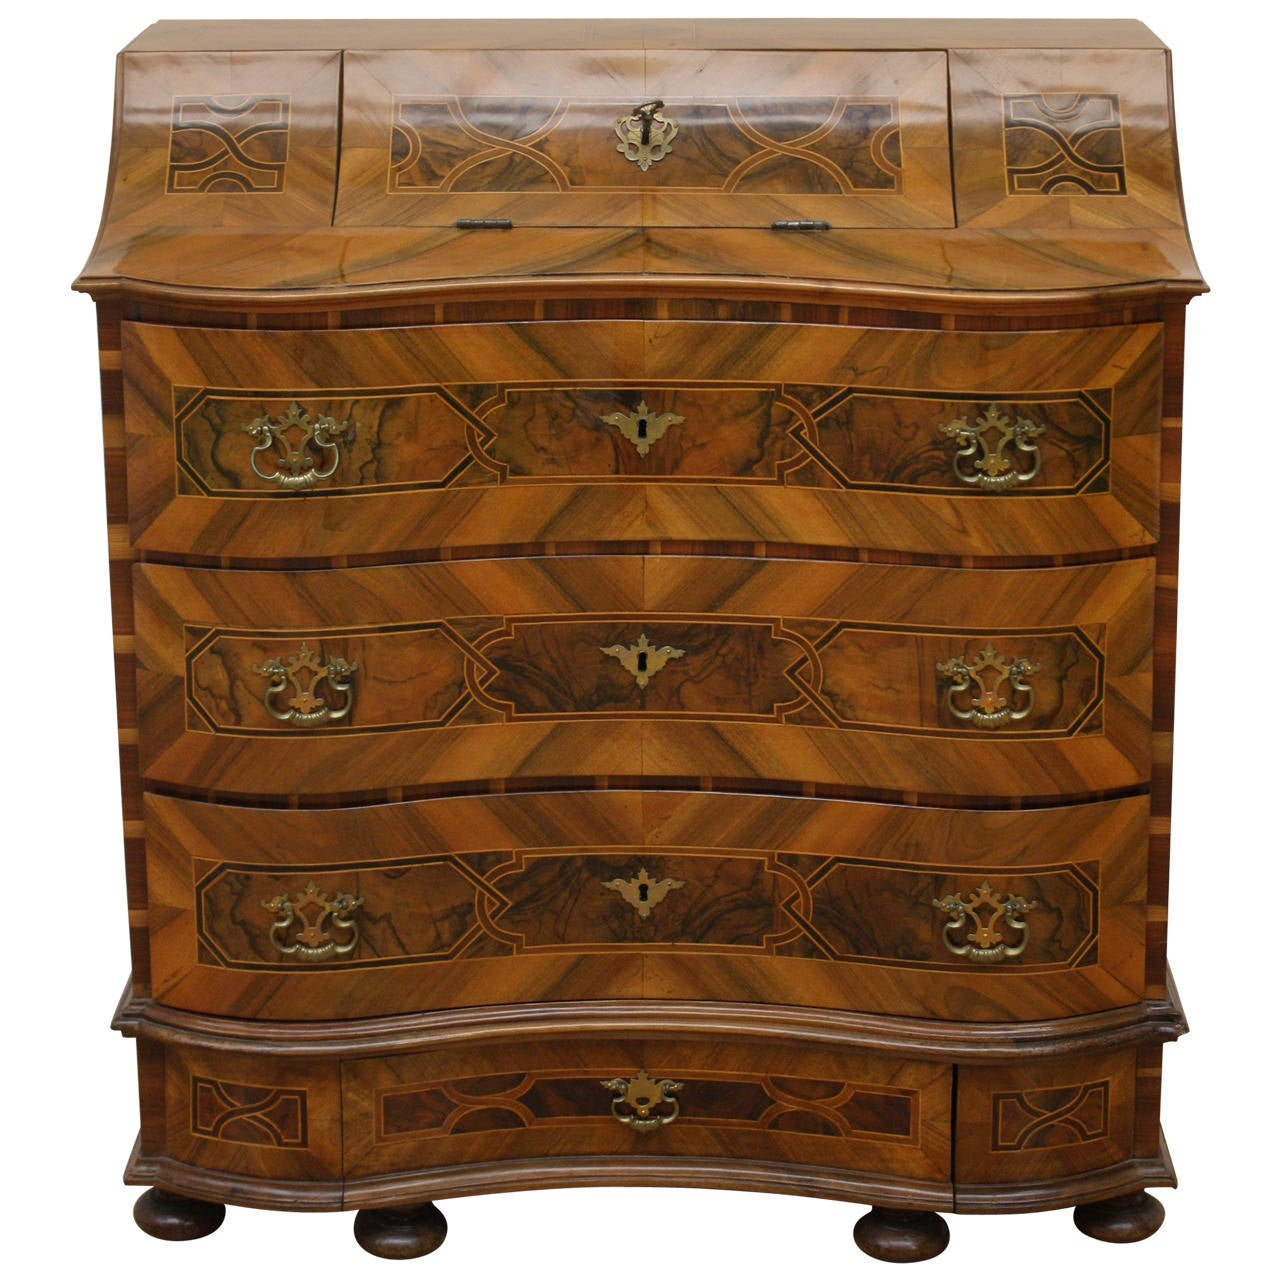 18th Century Baroque Commode and Secretaire